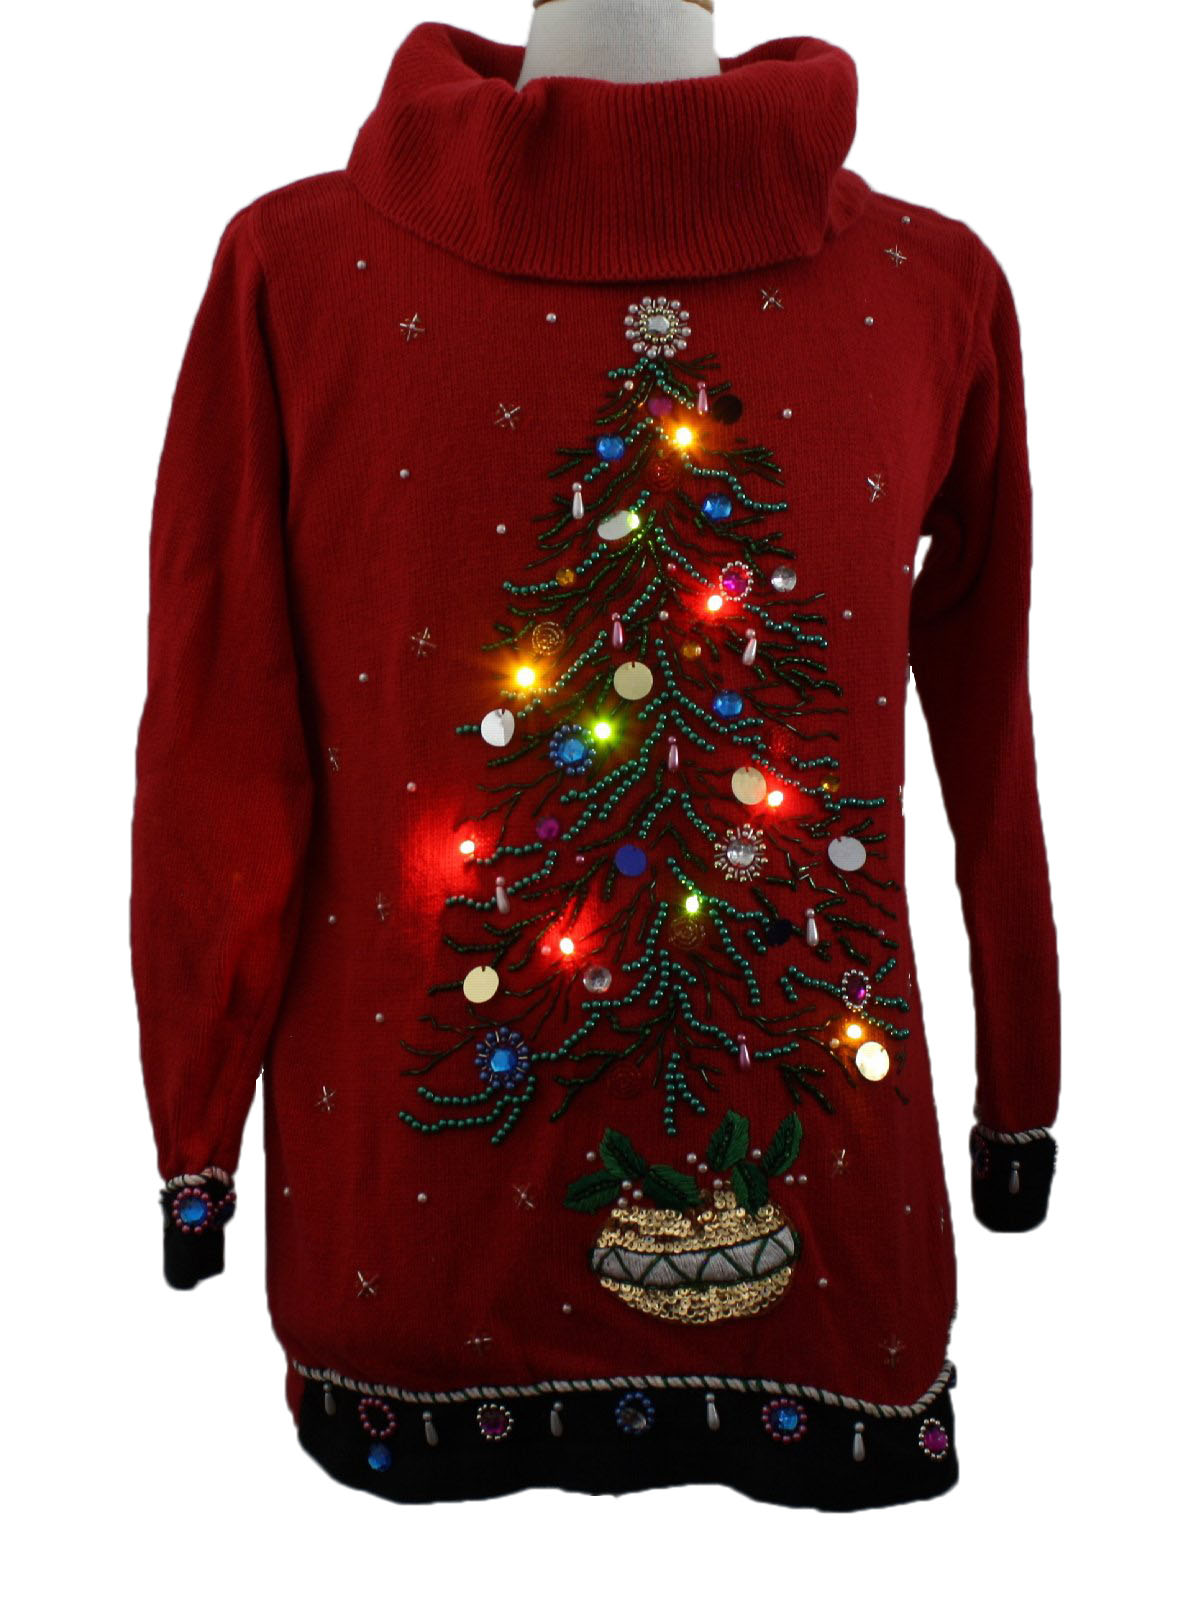 B.P. Design Womens Lightup Ugly Christmas Sweater $89.00 Not in stock. Item No. 217170